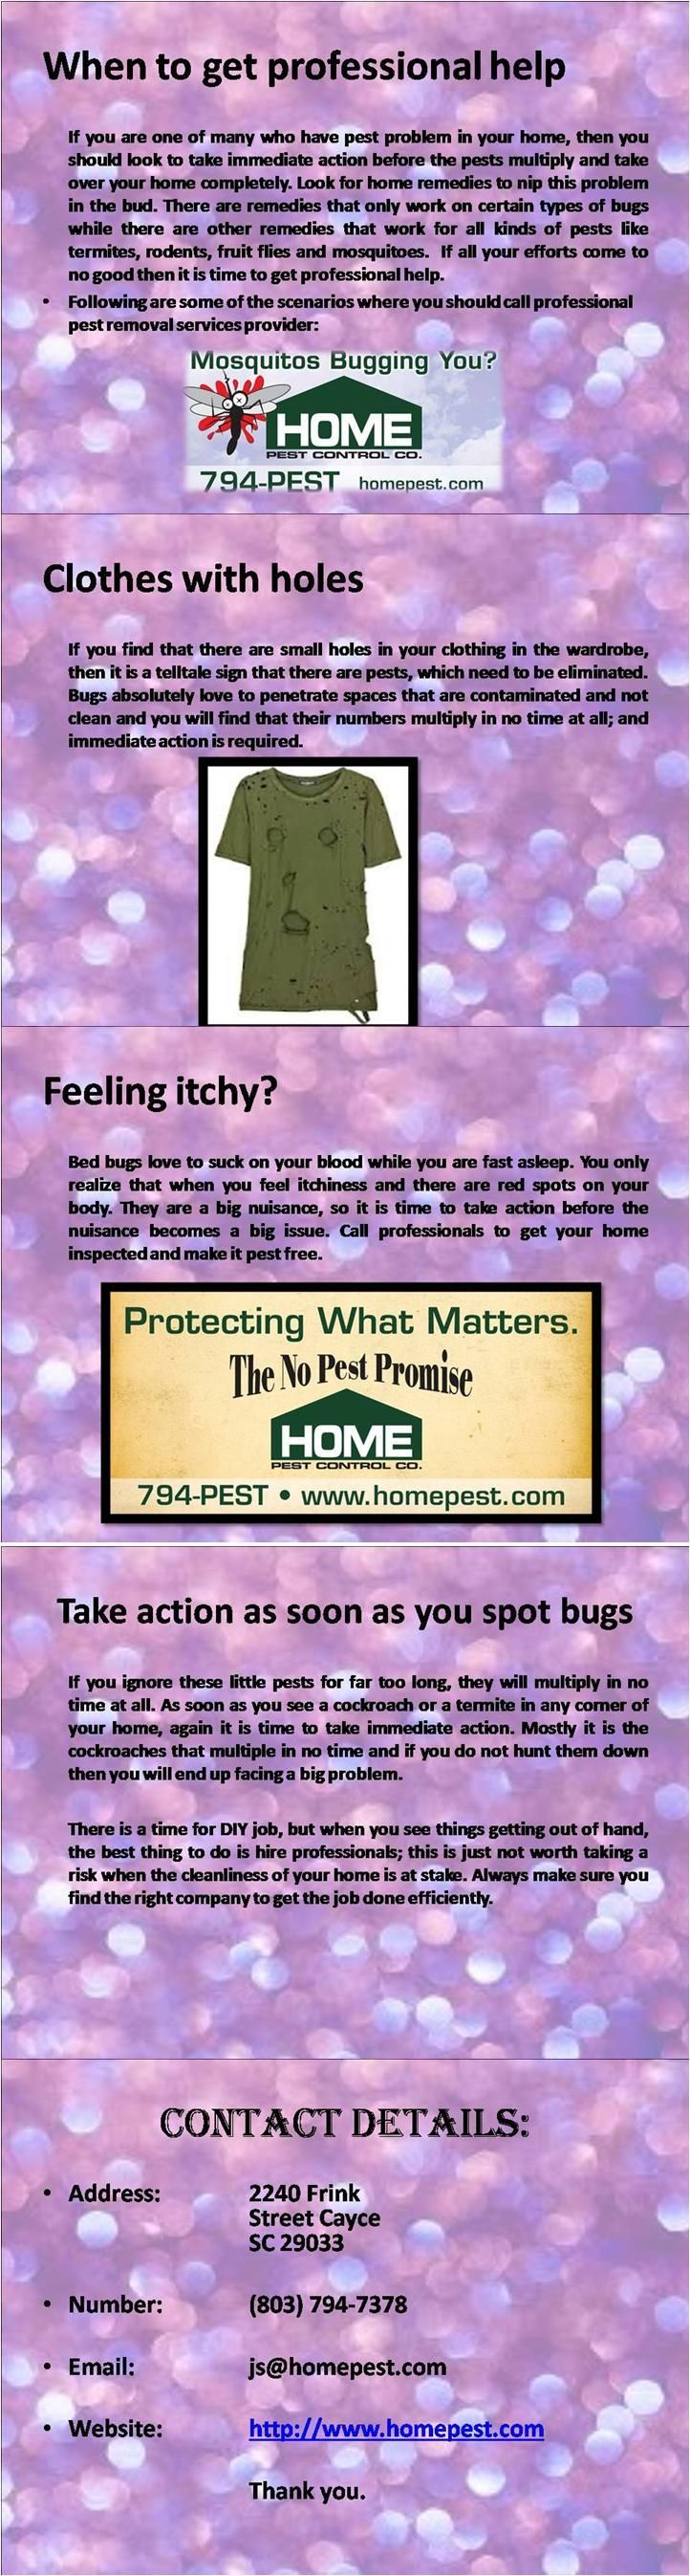 A DIY job can only work for a little while, but if you want to get rid of the pests for a long time then you need to hire professionals. For more information visit http://www.homepest.com/